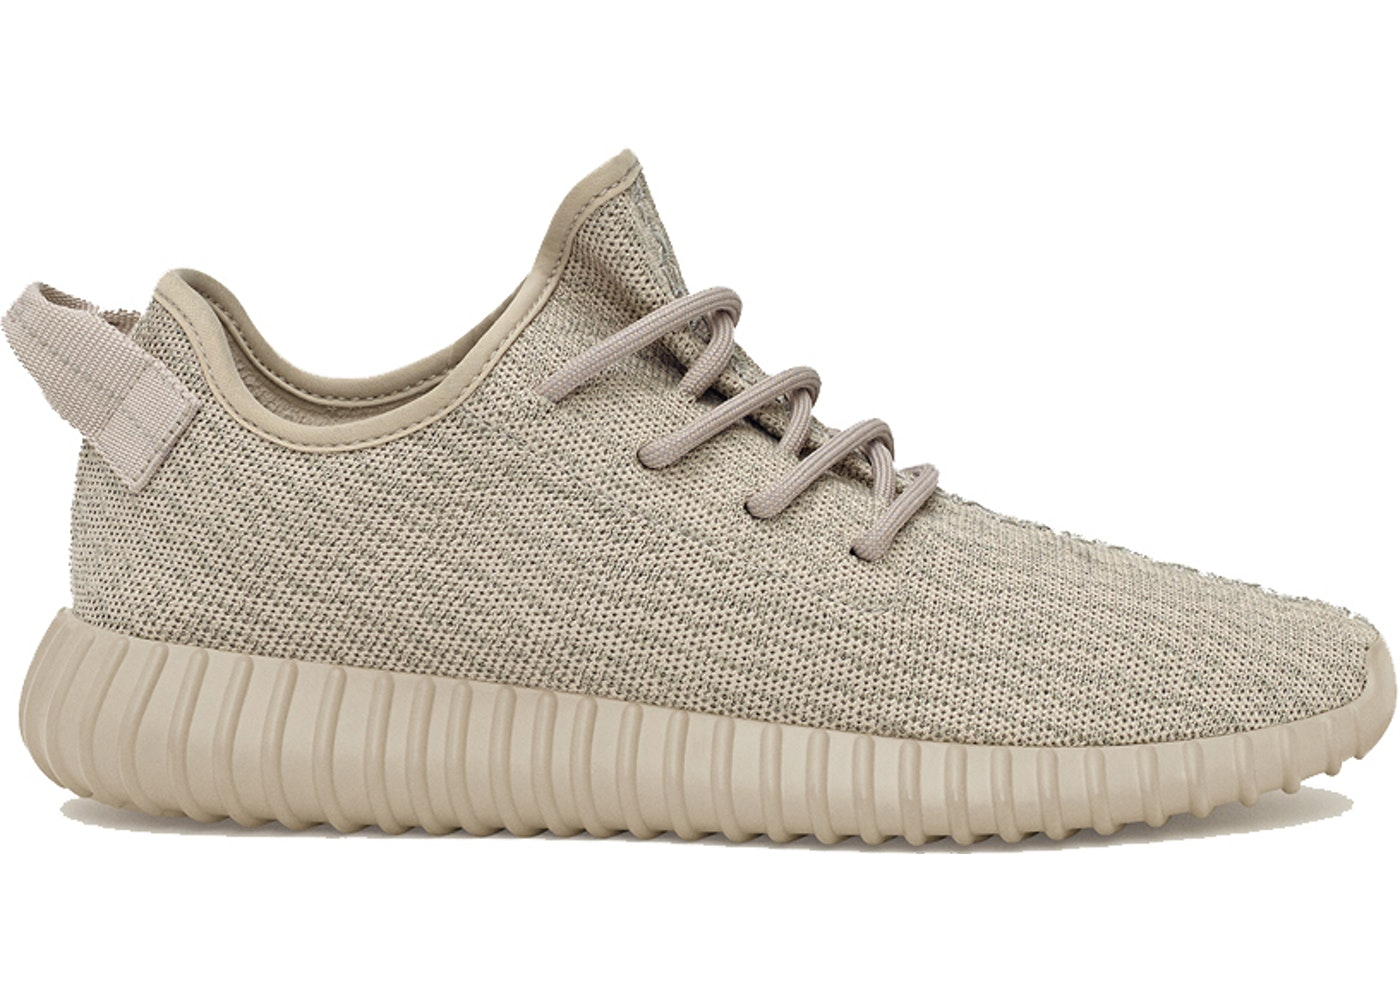 2 TONE Oxford Tan Rope Laces For ADIDAS Yeezy Boost 350 Oxford